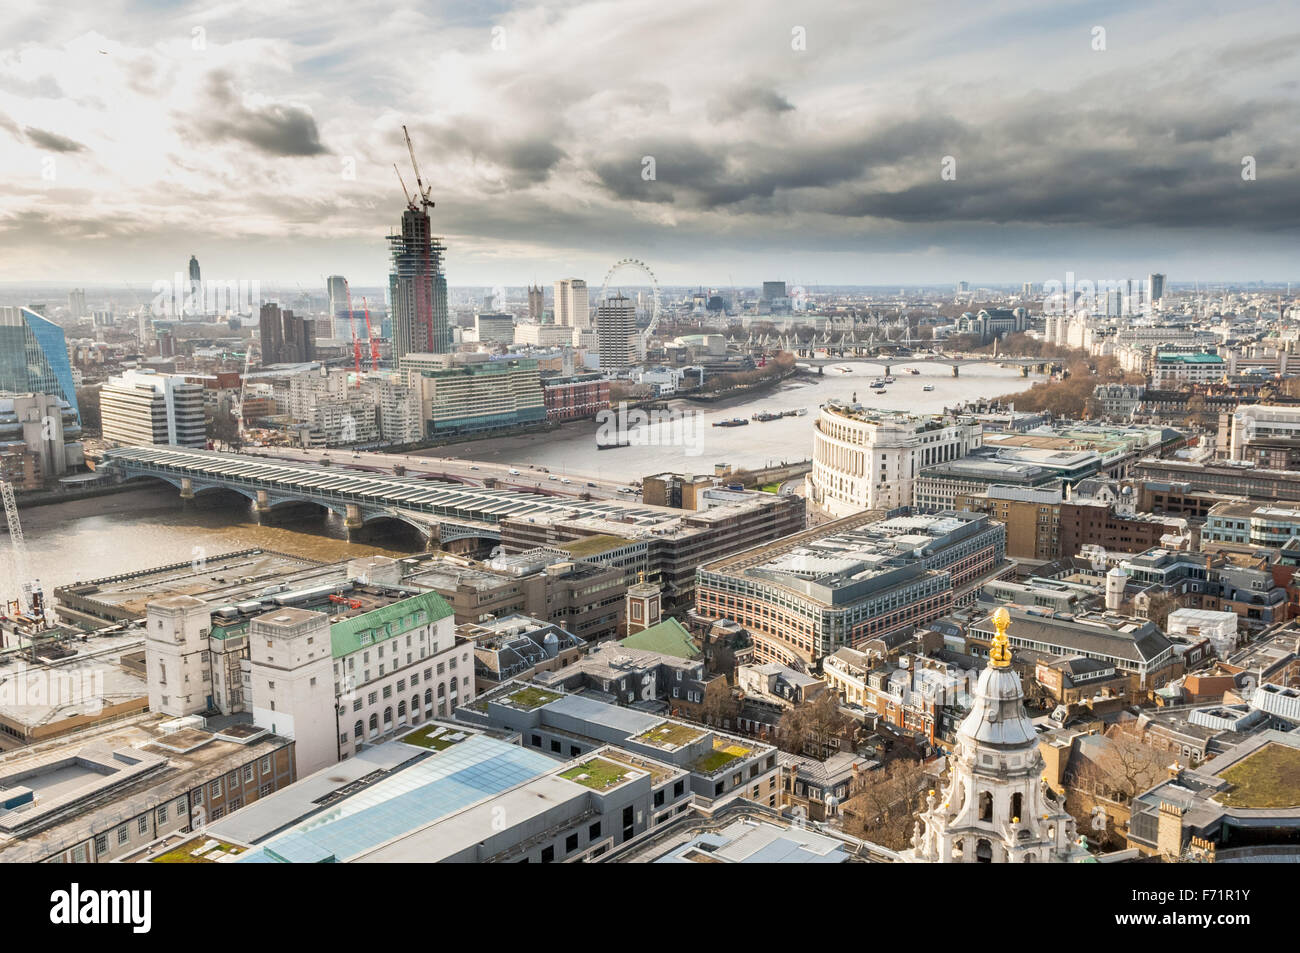 The view from St. Paul's Cathedral looking west across London over The River Thames including London landmarks - Stock Image